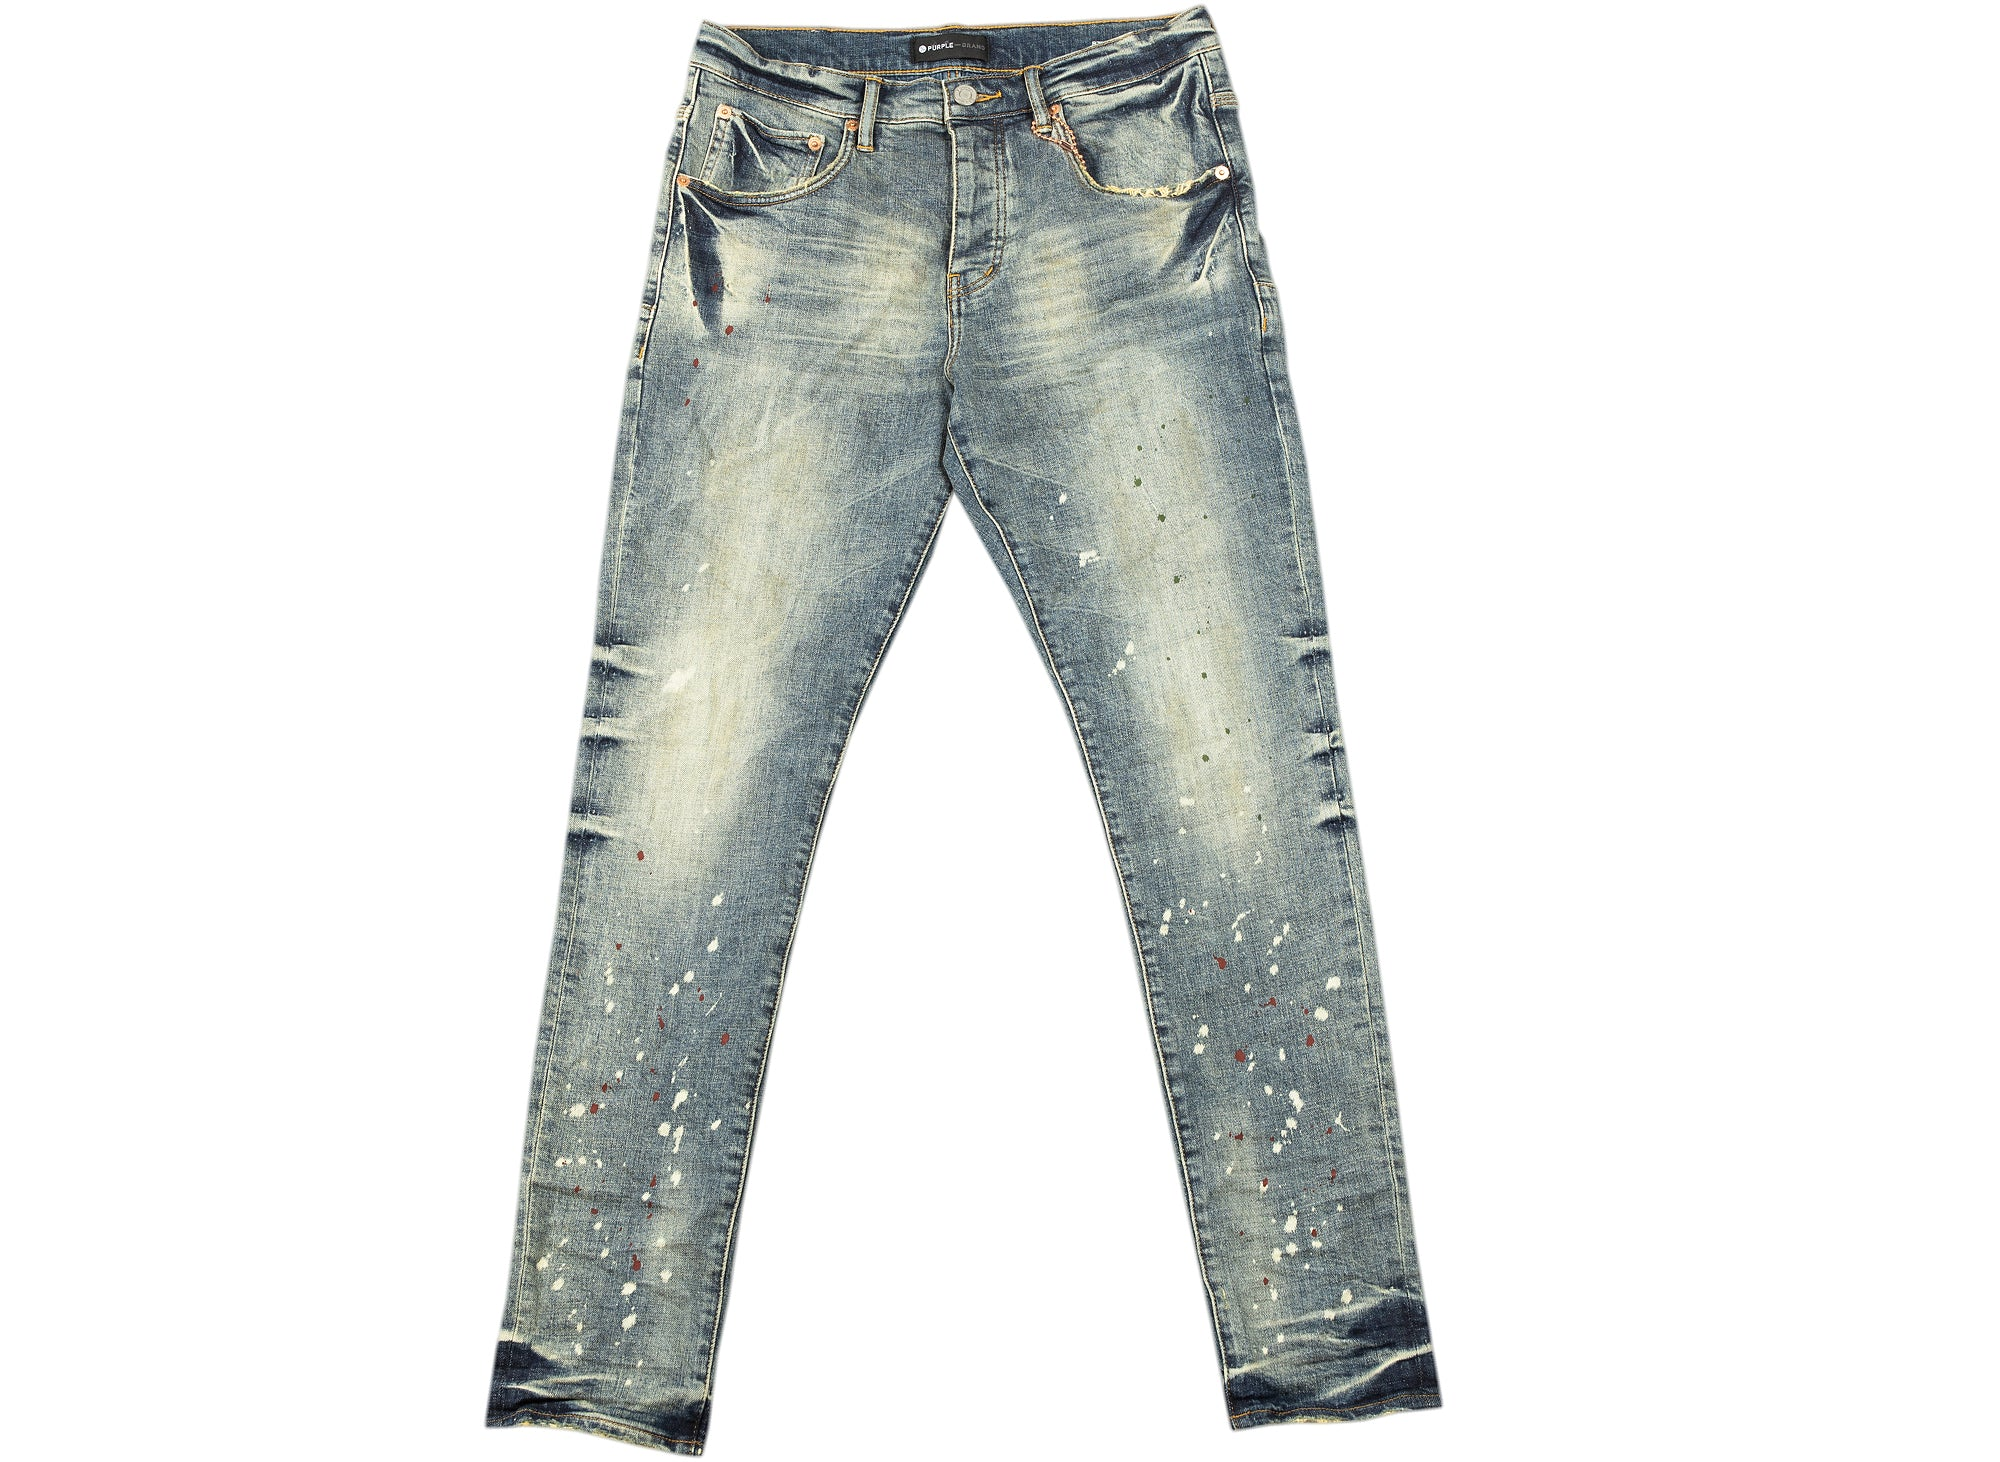 Purple Brand Vintage Spotted Indigo Jeans xld